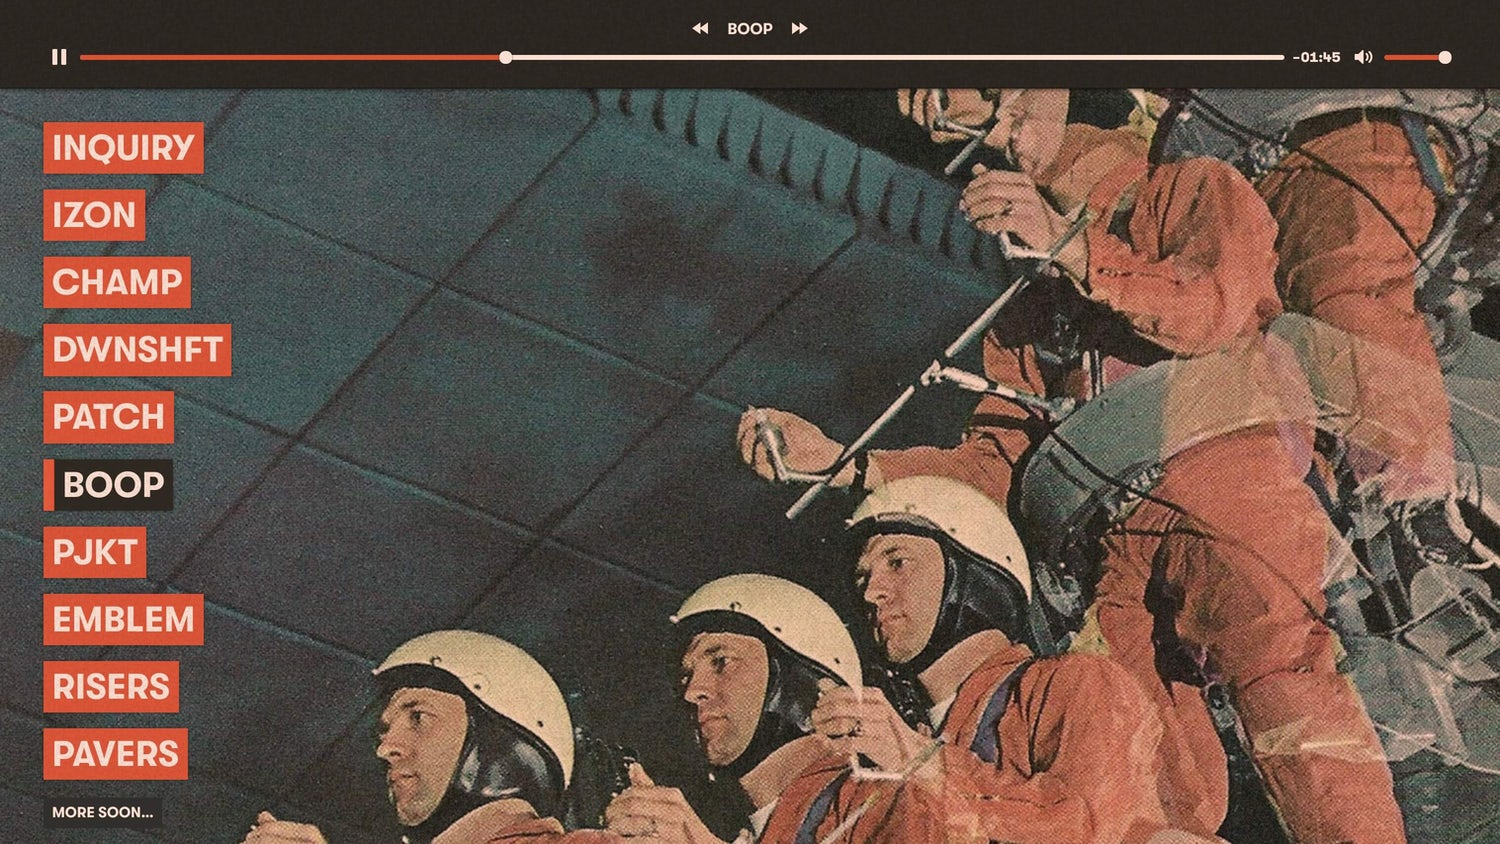 A super vintage looking site with a distressed background image of cosmonaut